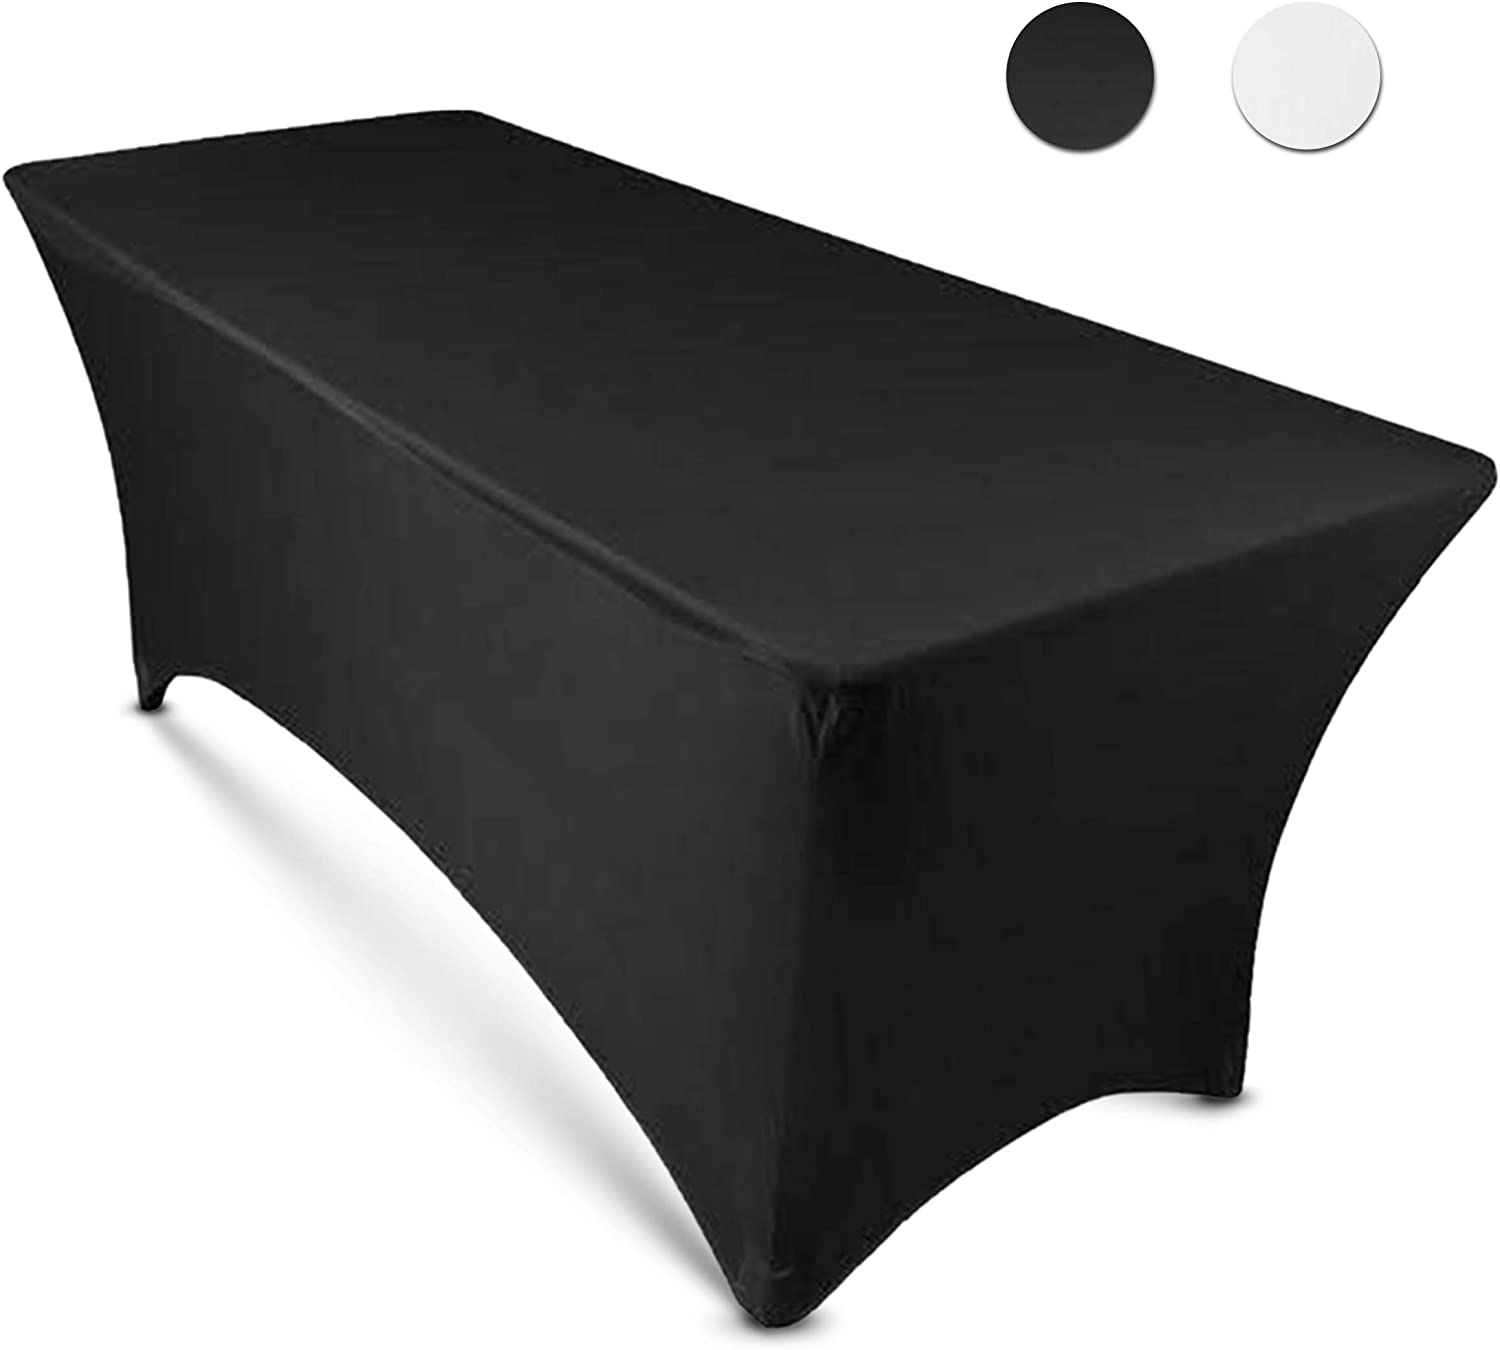 8ft Tablecloth Rectangular Spandex Linen - Black Table Cloth Fitted Cover for 8 Foot Folding Table, Wedding Linens Banquet Cloths Rectangle Covers: Kitchen & Dining